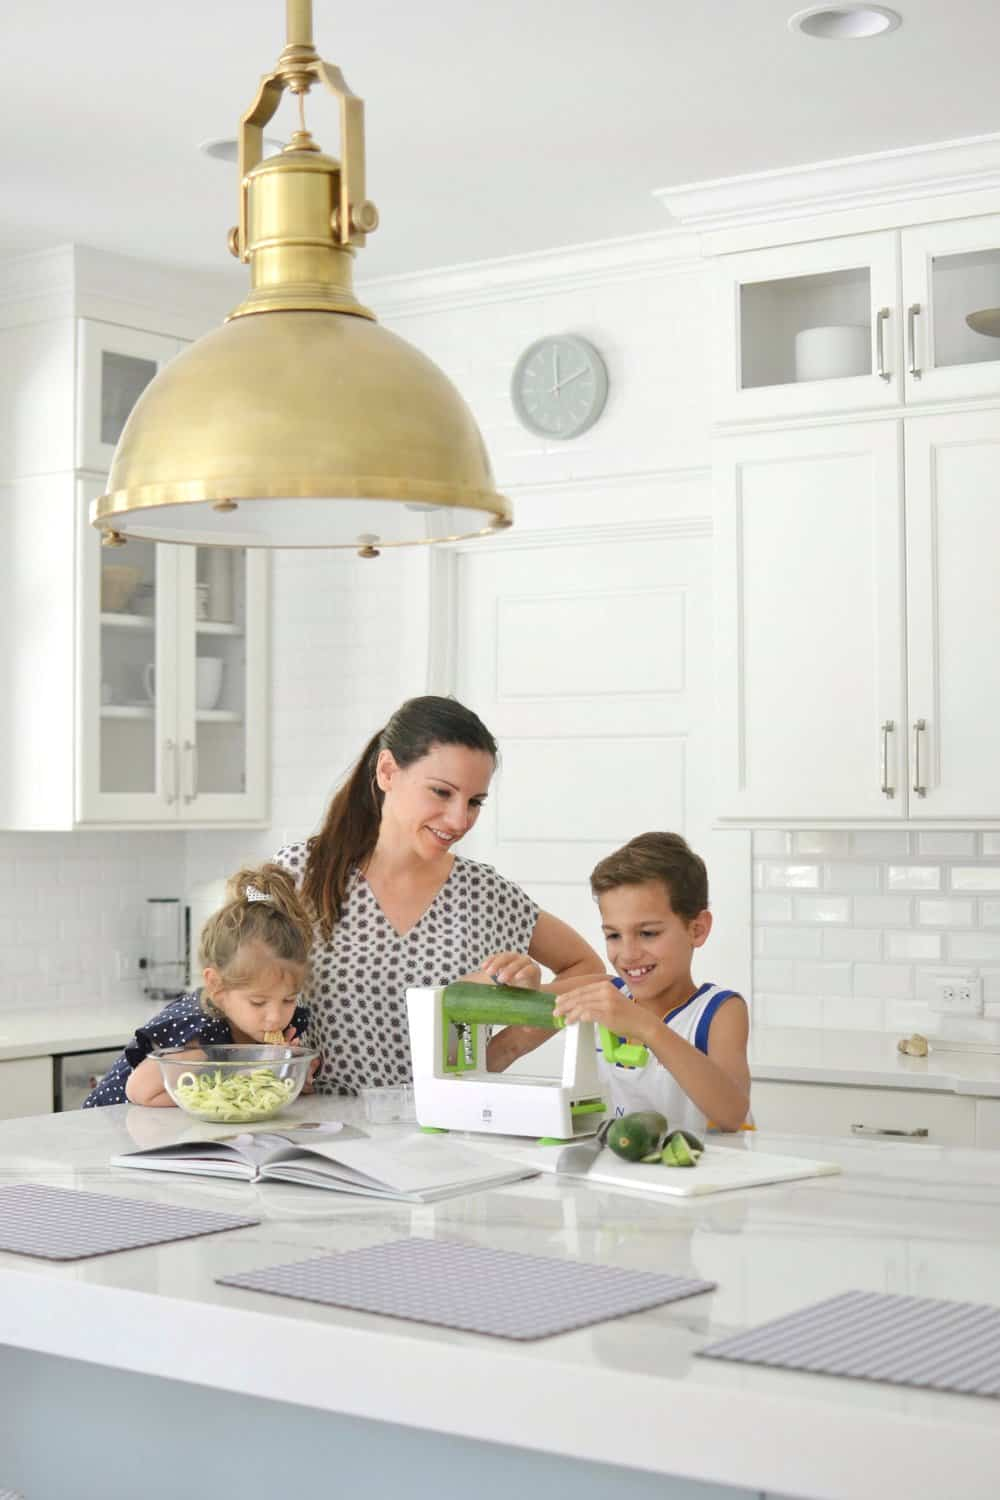 2 kids and a mom cooking in kitchen using a kitchen item bought at Home Centric